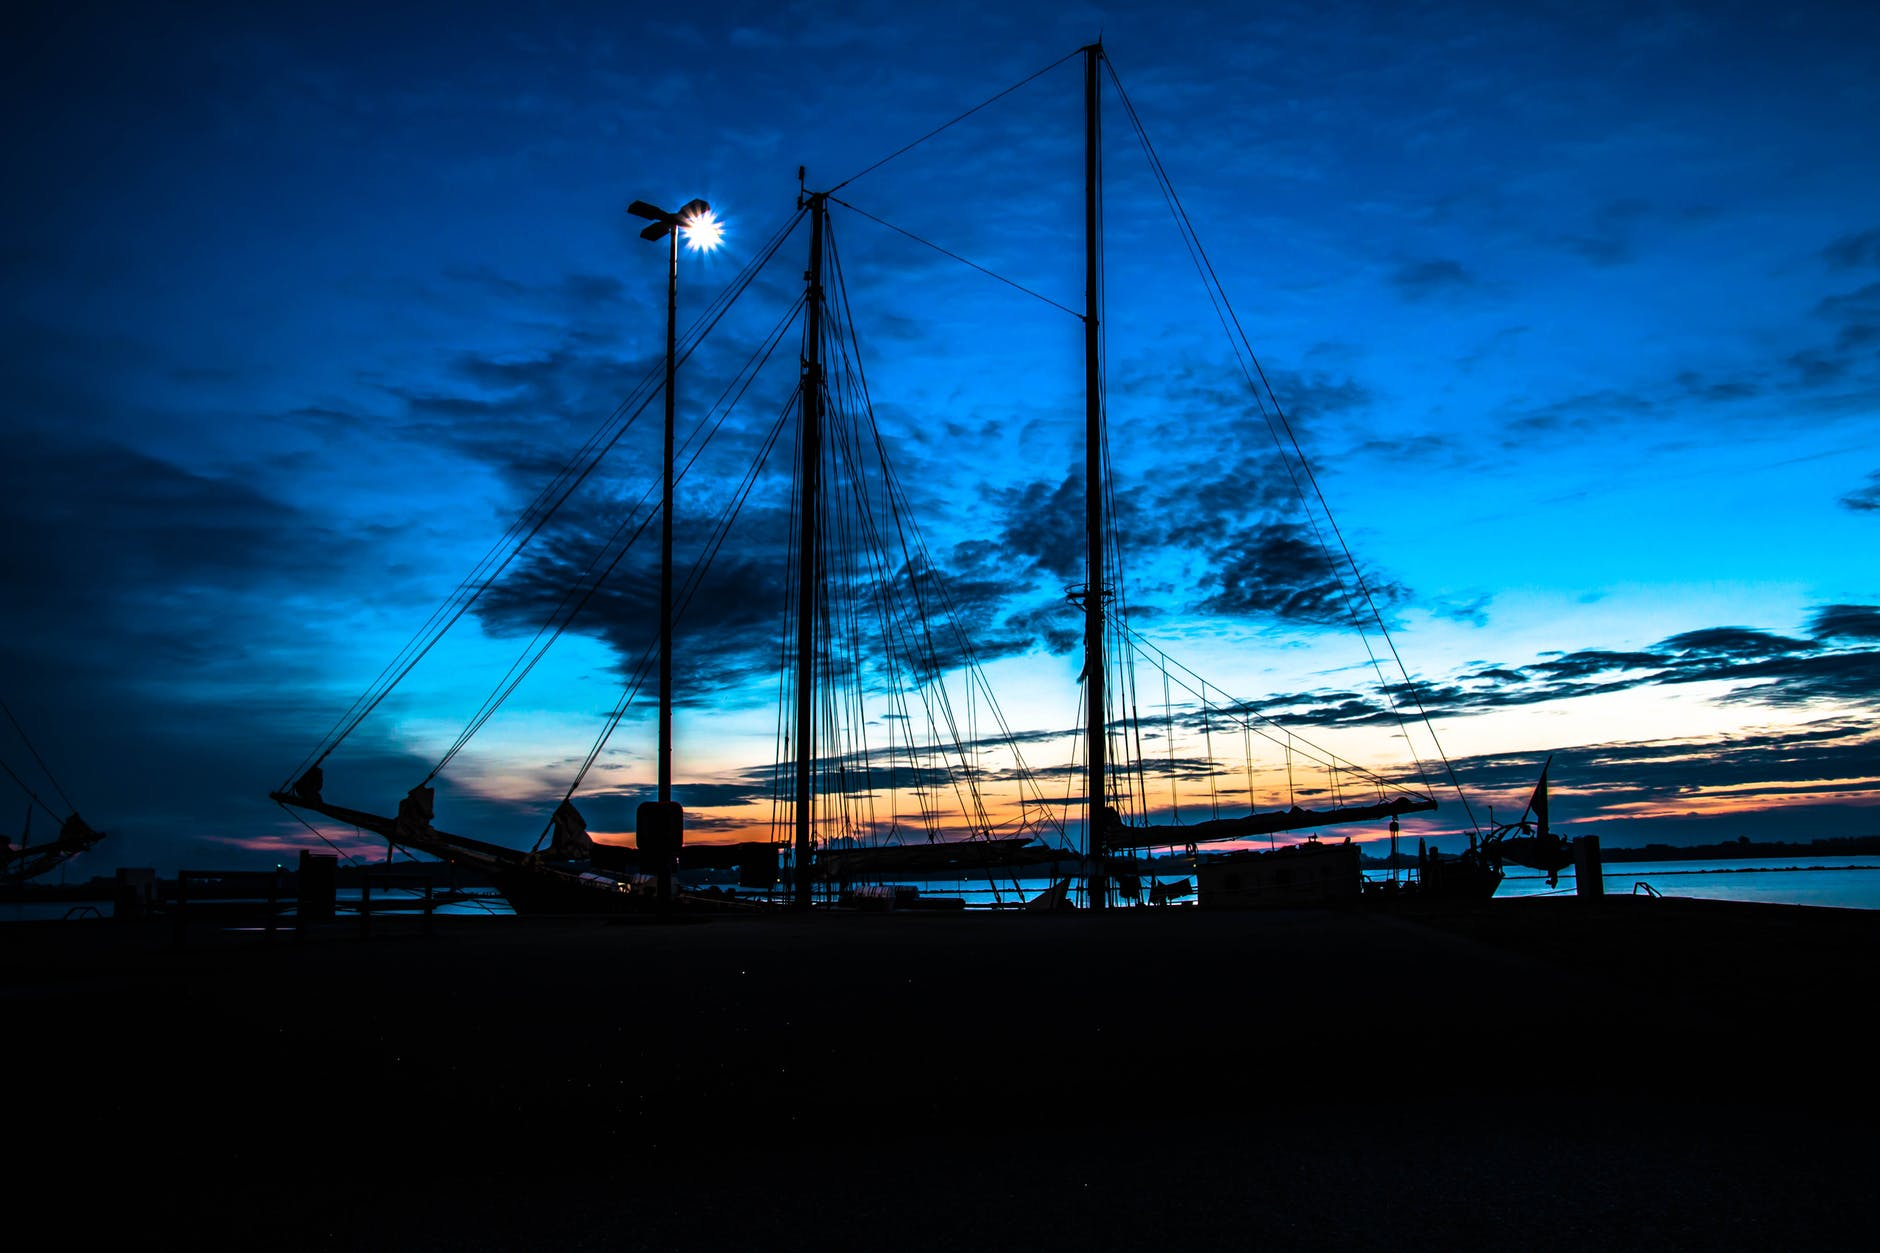 silhouette photo of black sailing ship